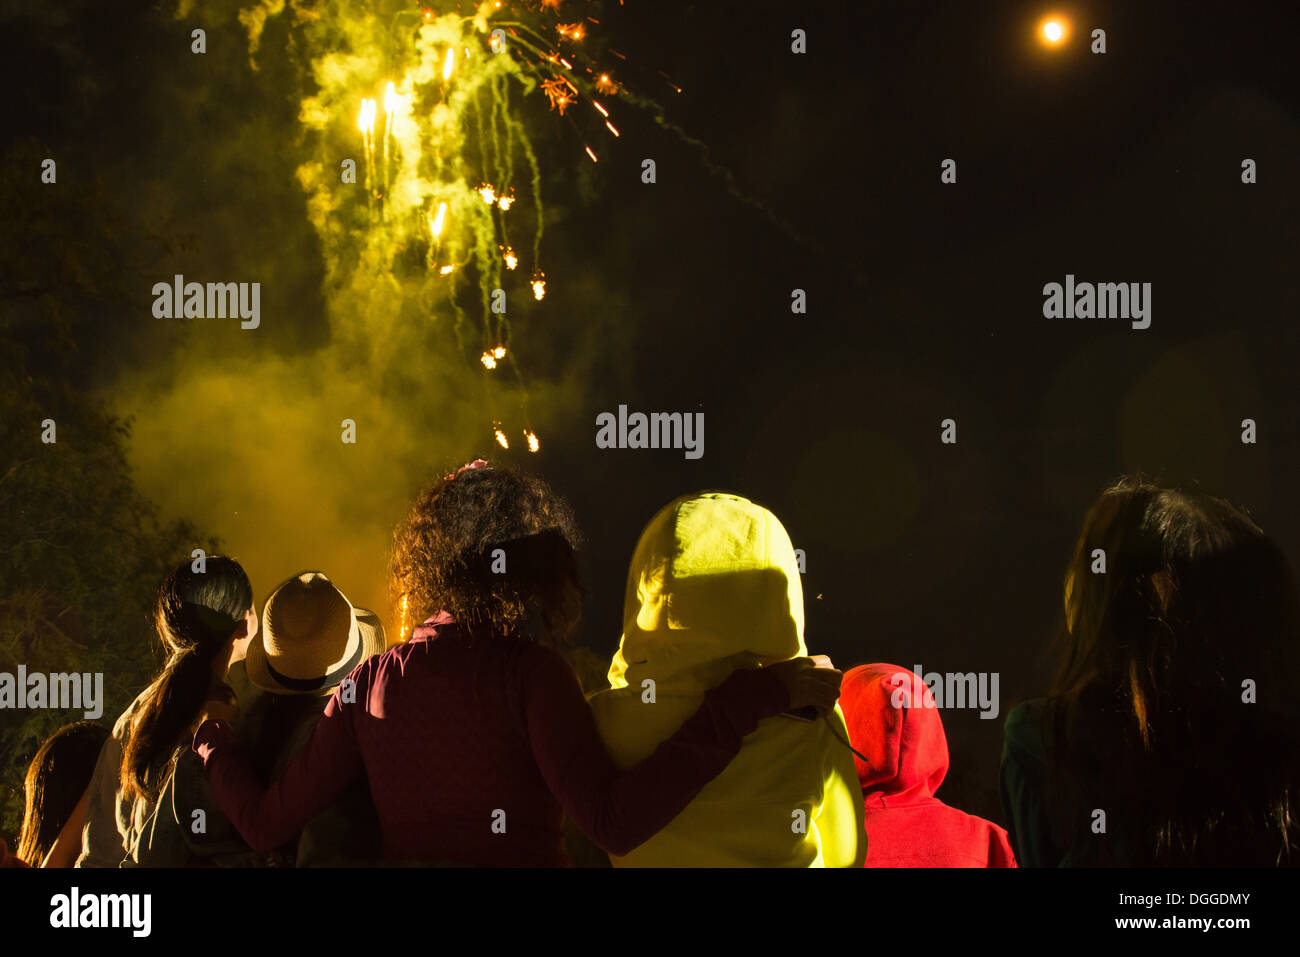 Group of people watching firework display - Stock Image